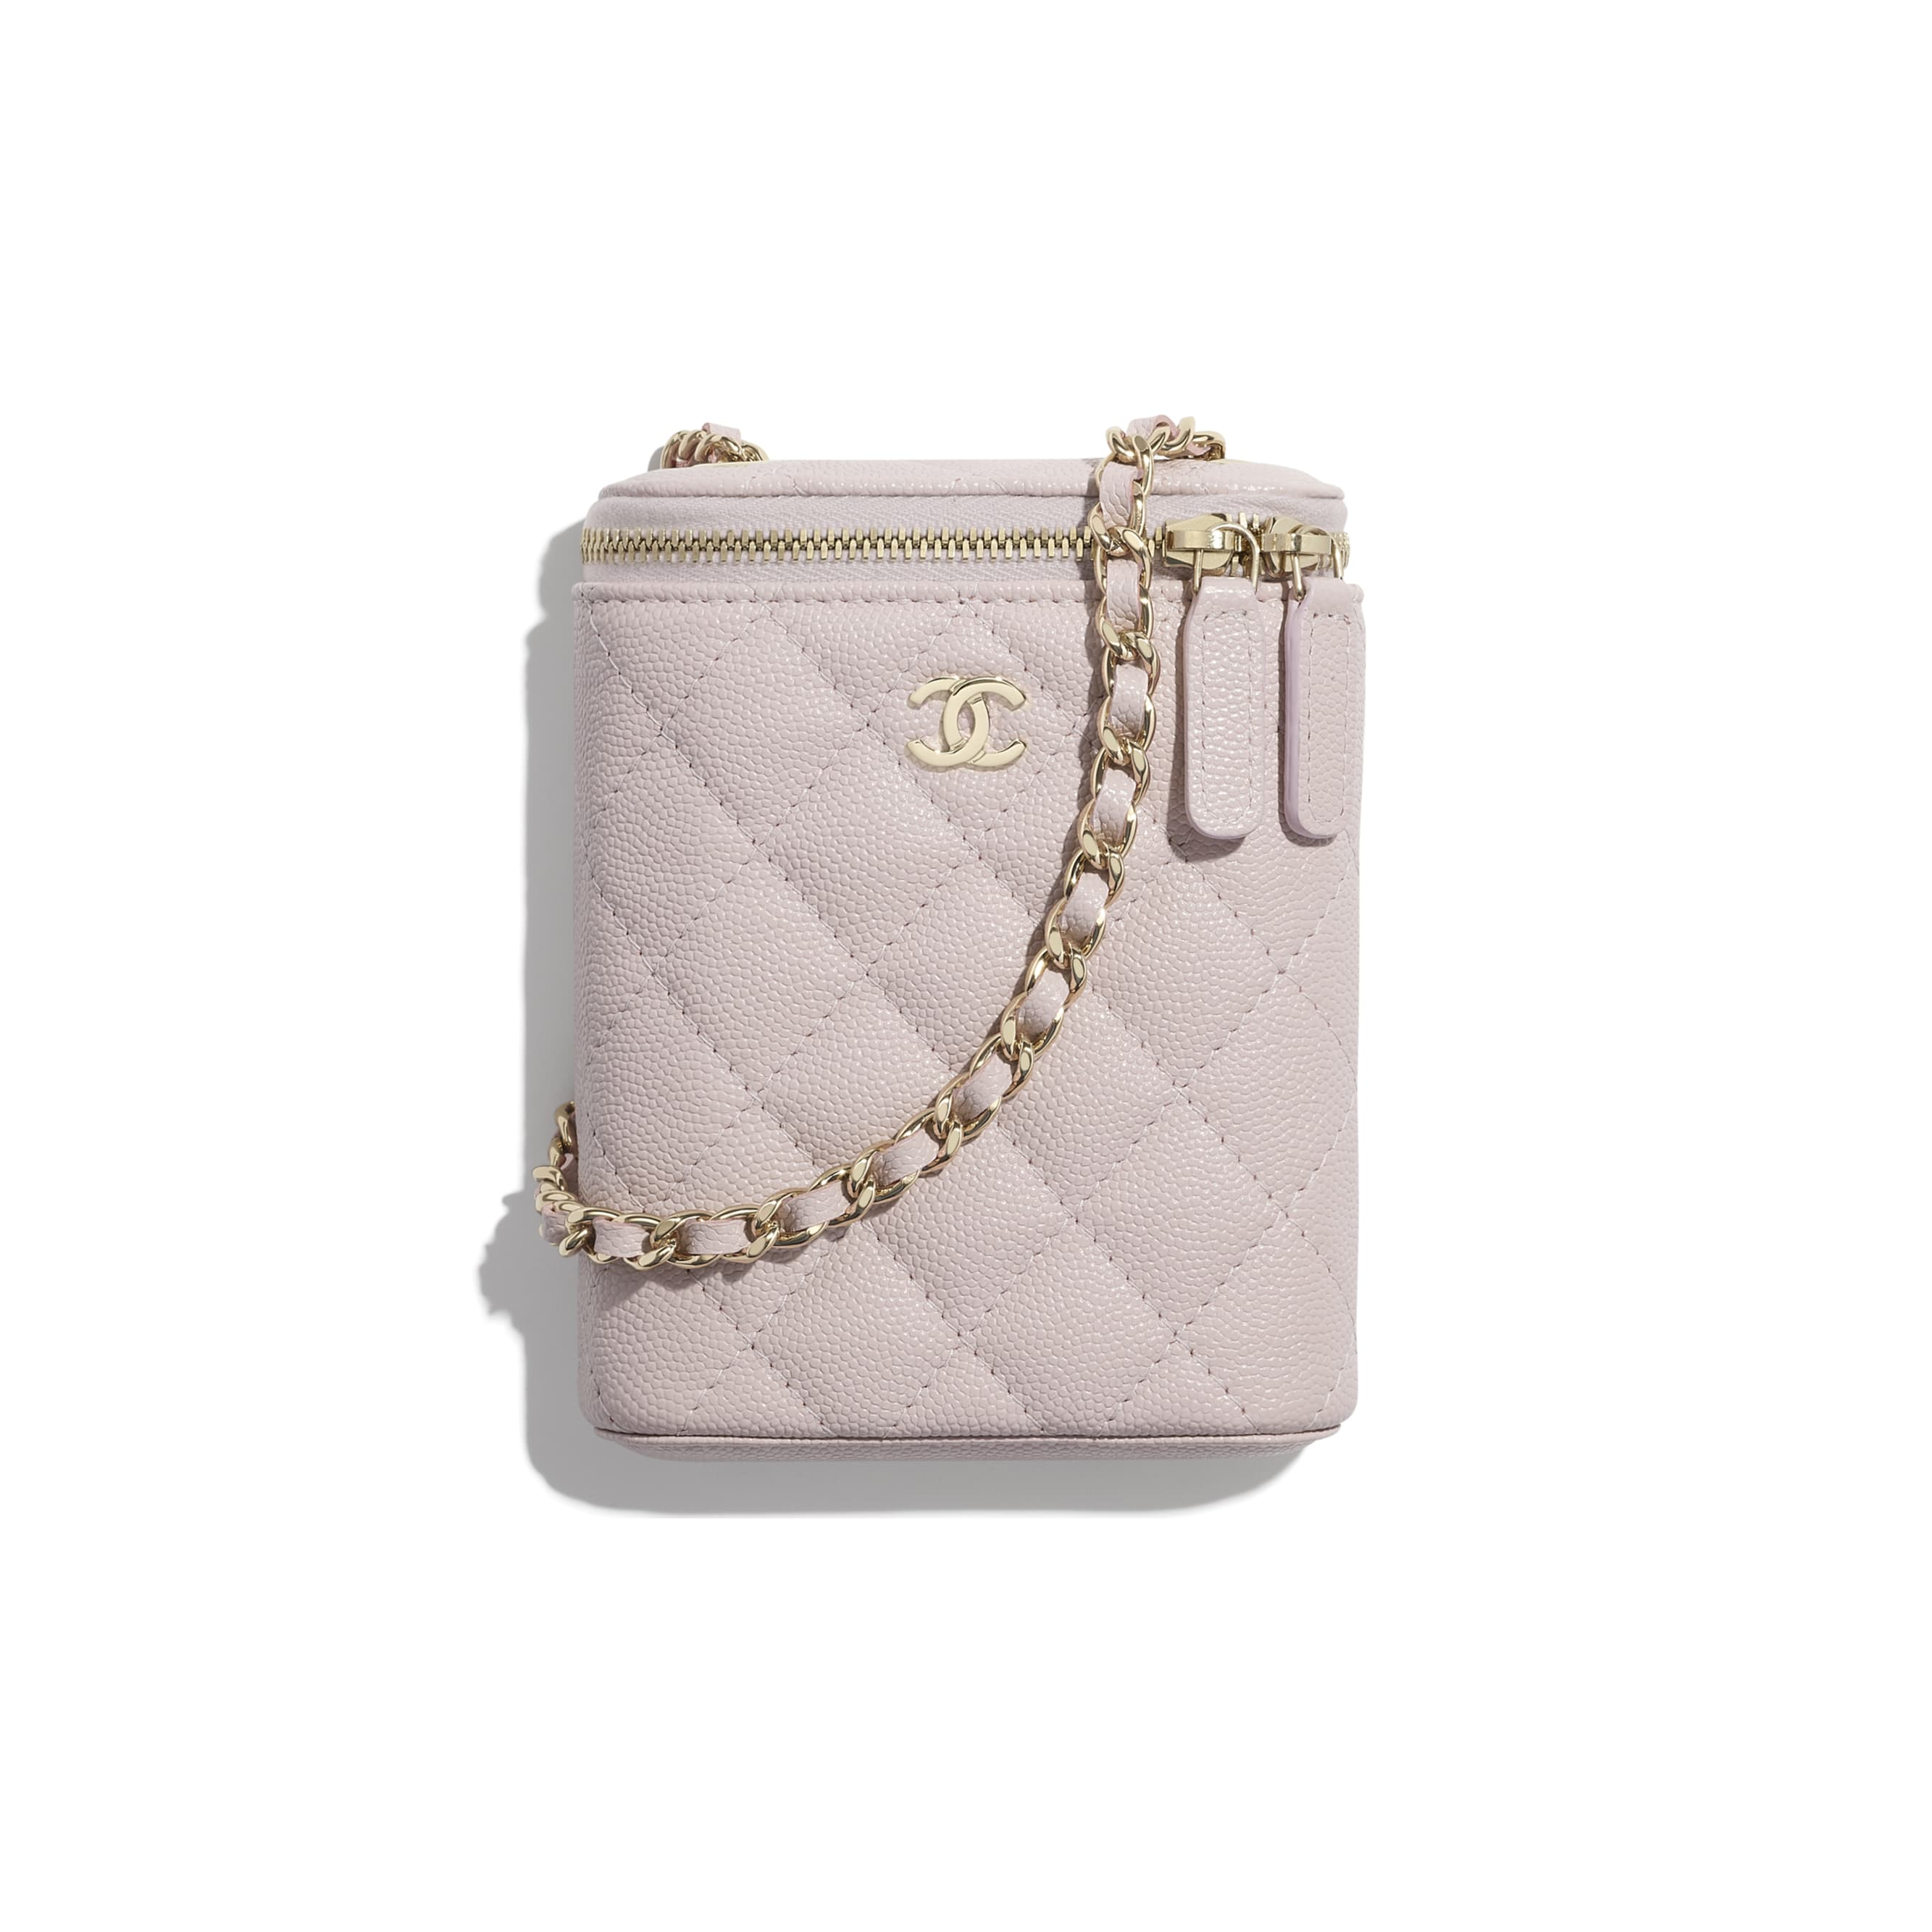 Classic Vanity with Chain - Light Pink - Grained Calfskin & Gold-Tone Metal - CHANEL - Default view - see standard sized version